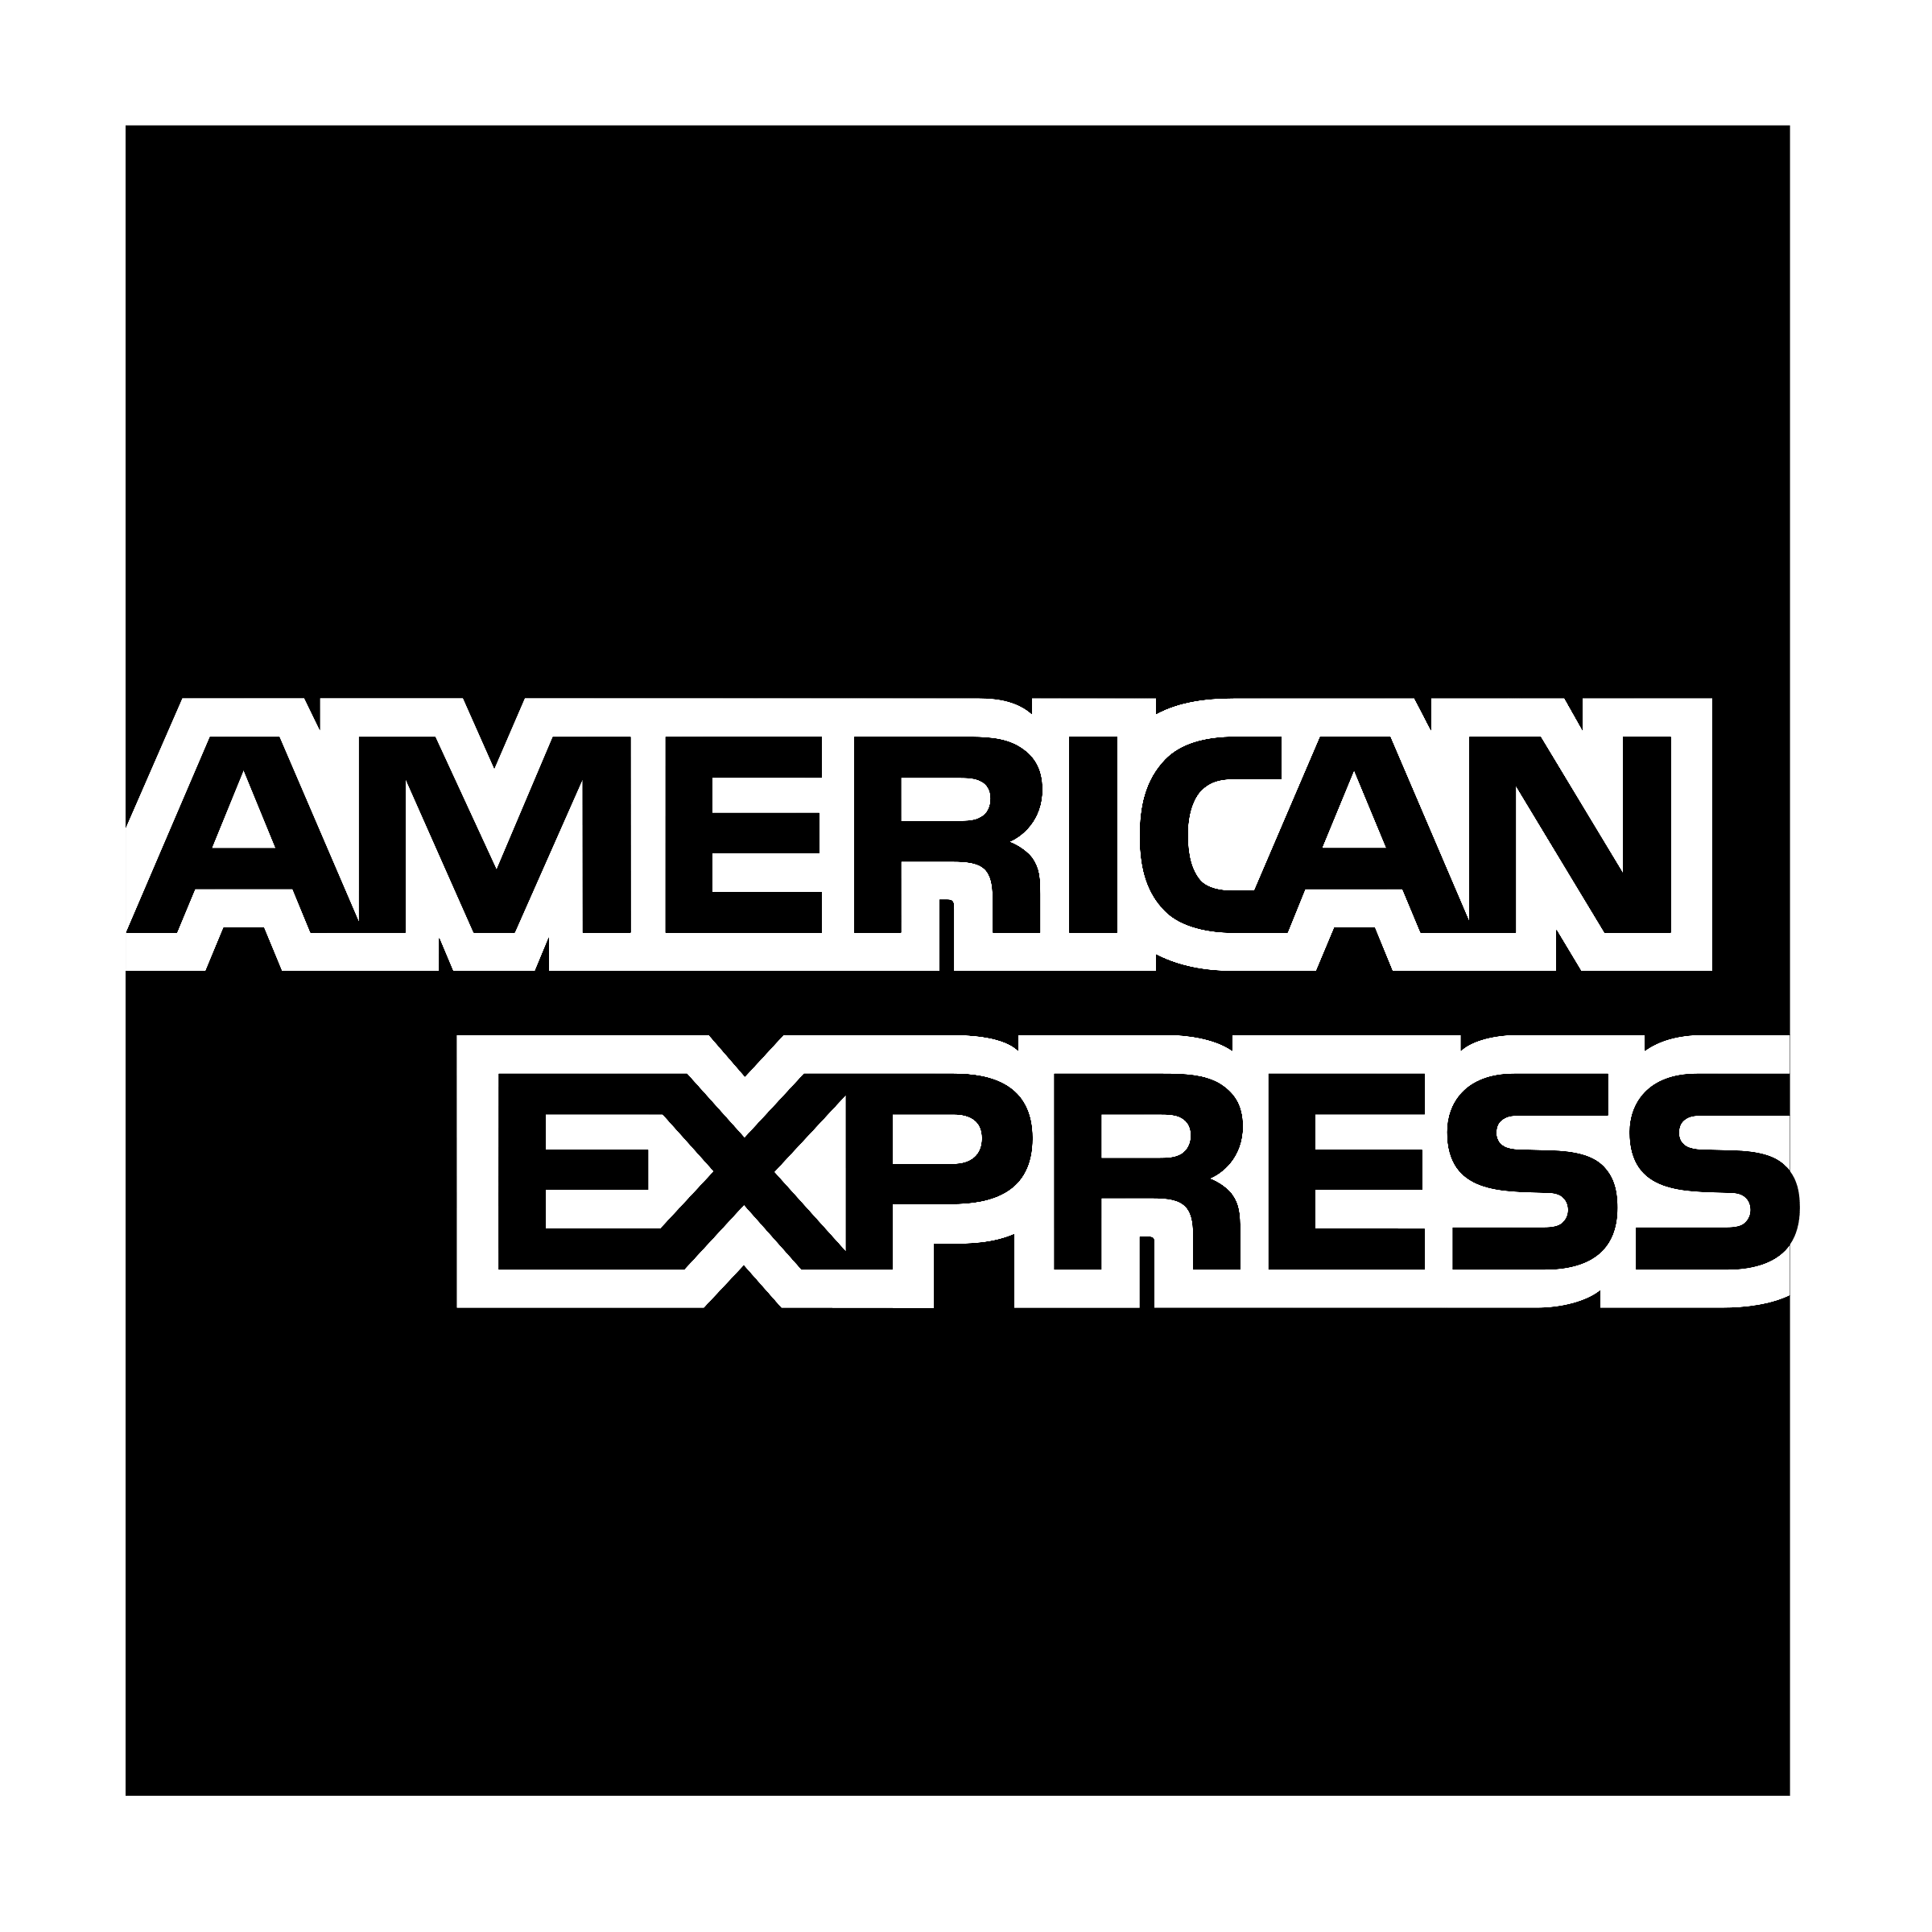 American Express Logo - american-express-logo-black-and-white - Clarence